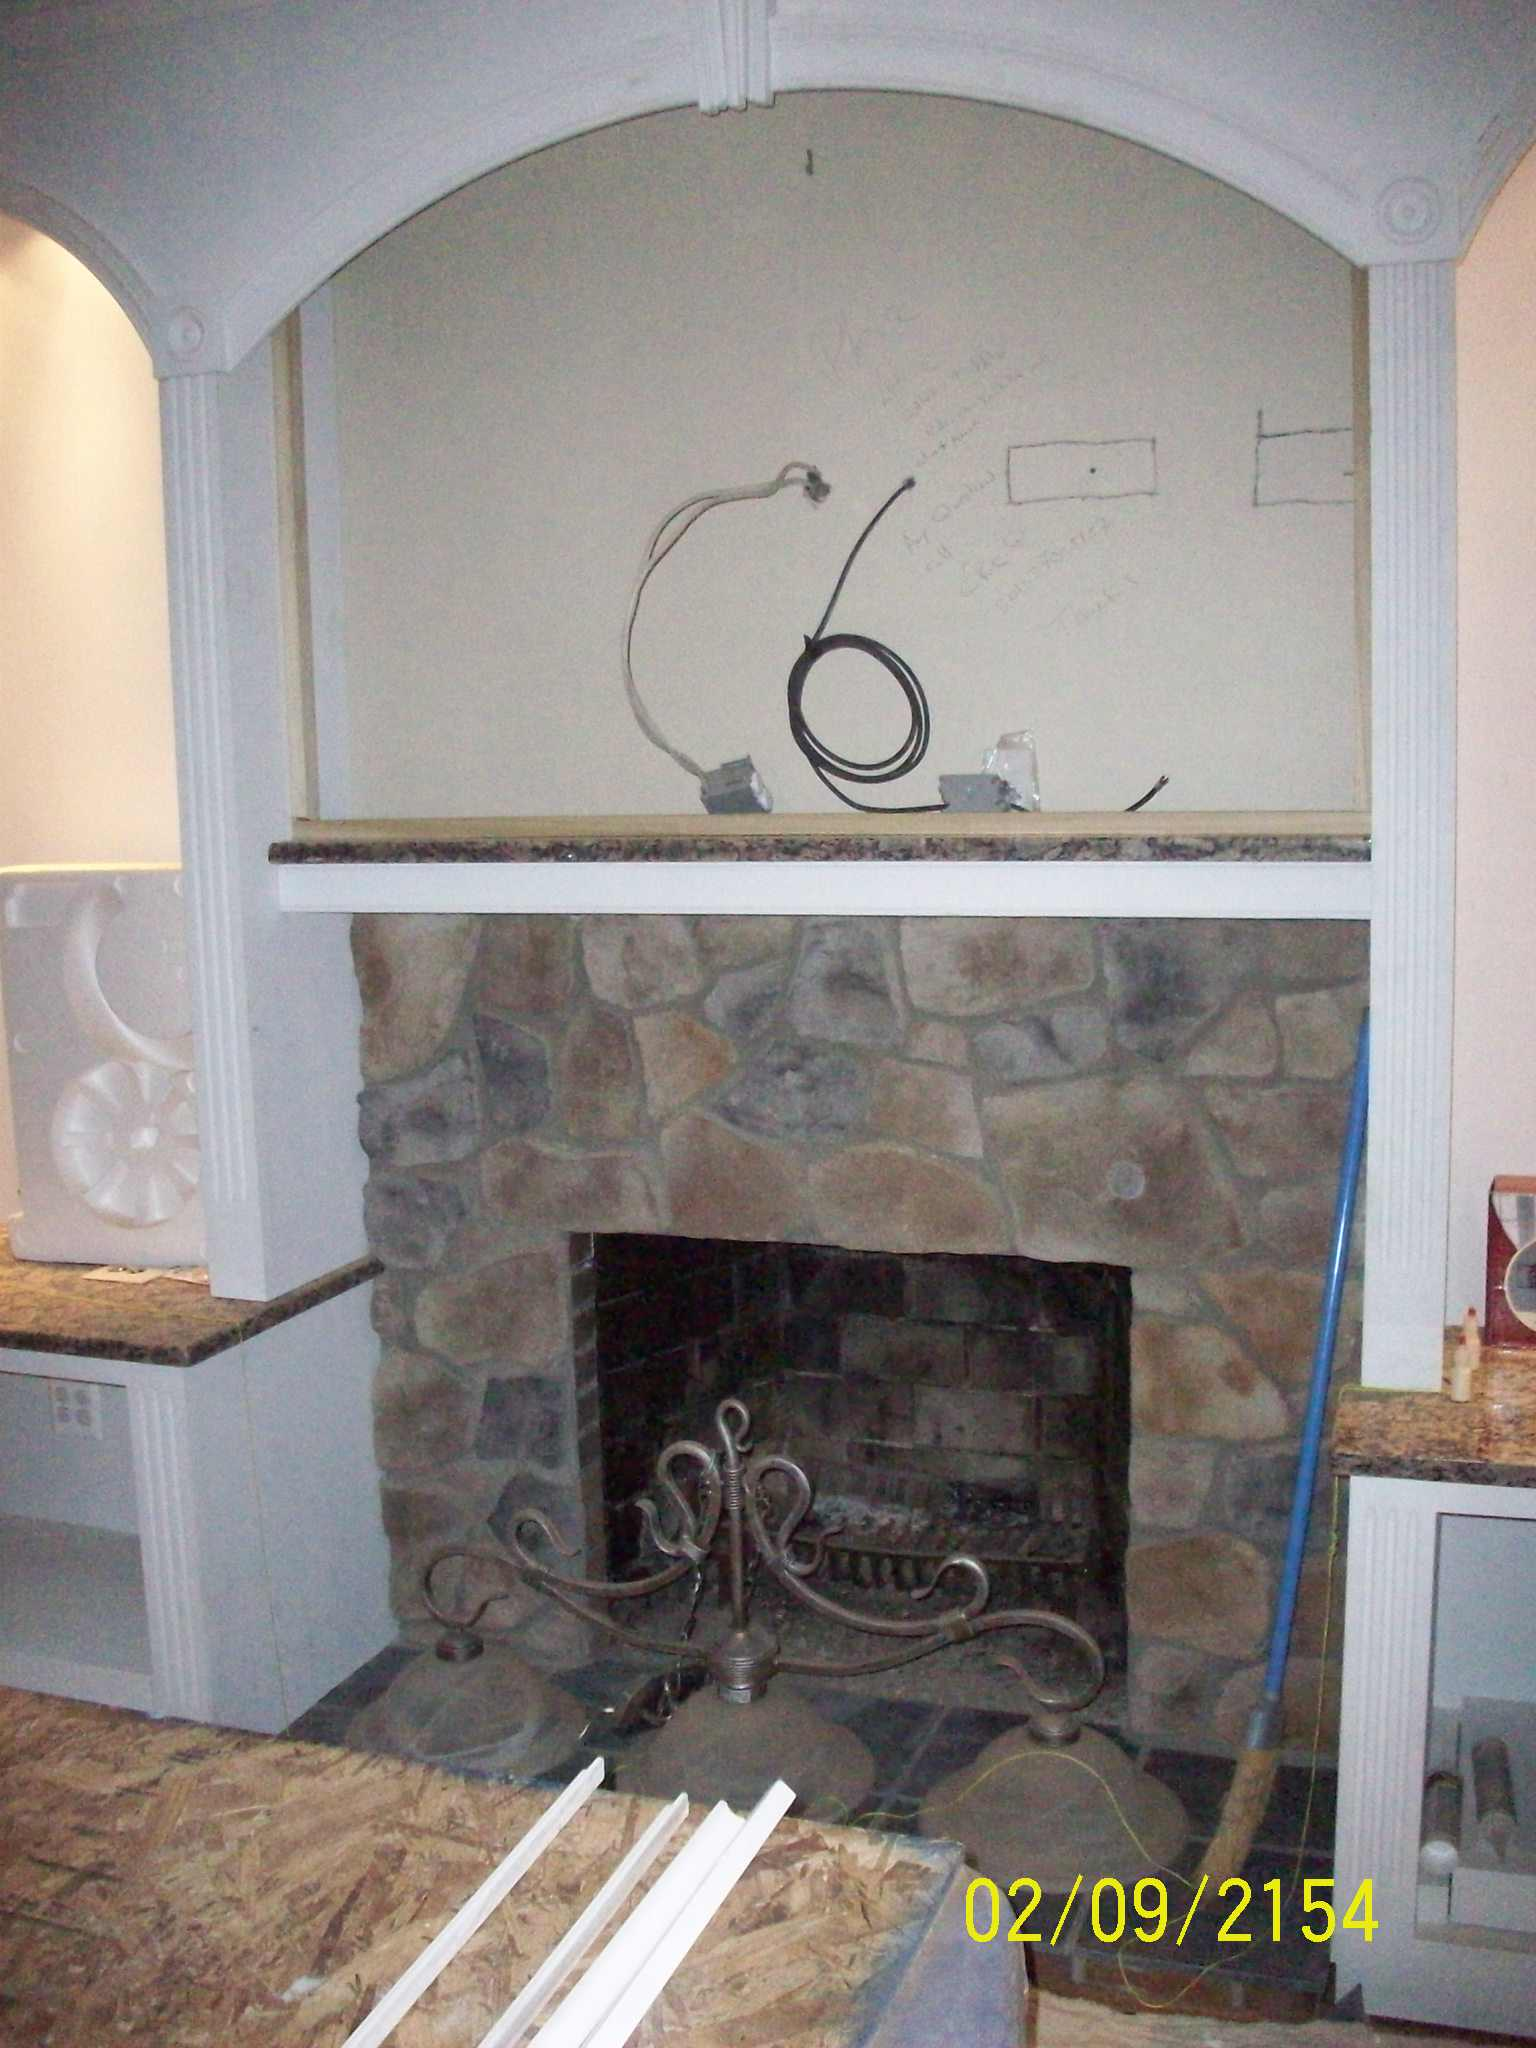 edmonton gallery alberta fireplaces inc blvd hours gateway bus ab opening nw fireplace unlimited